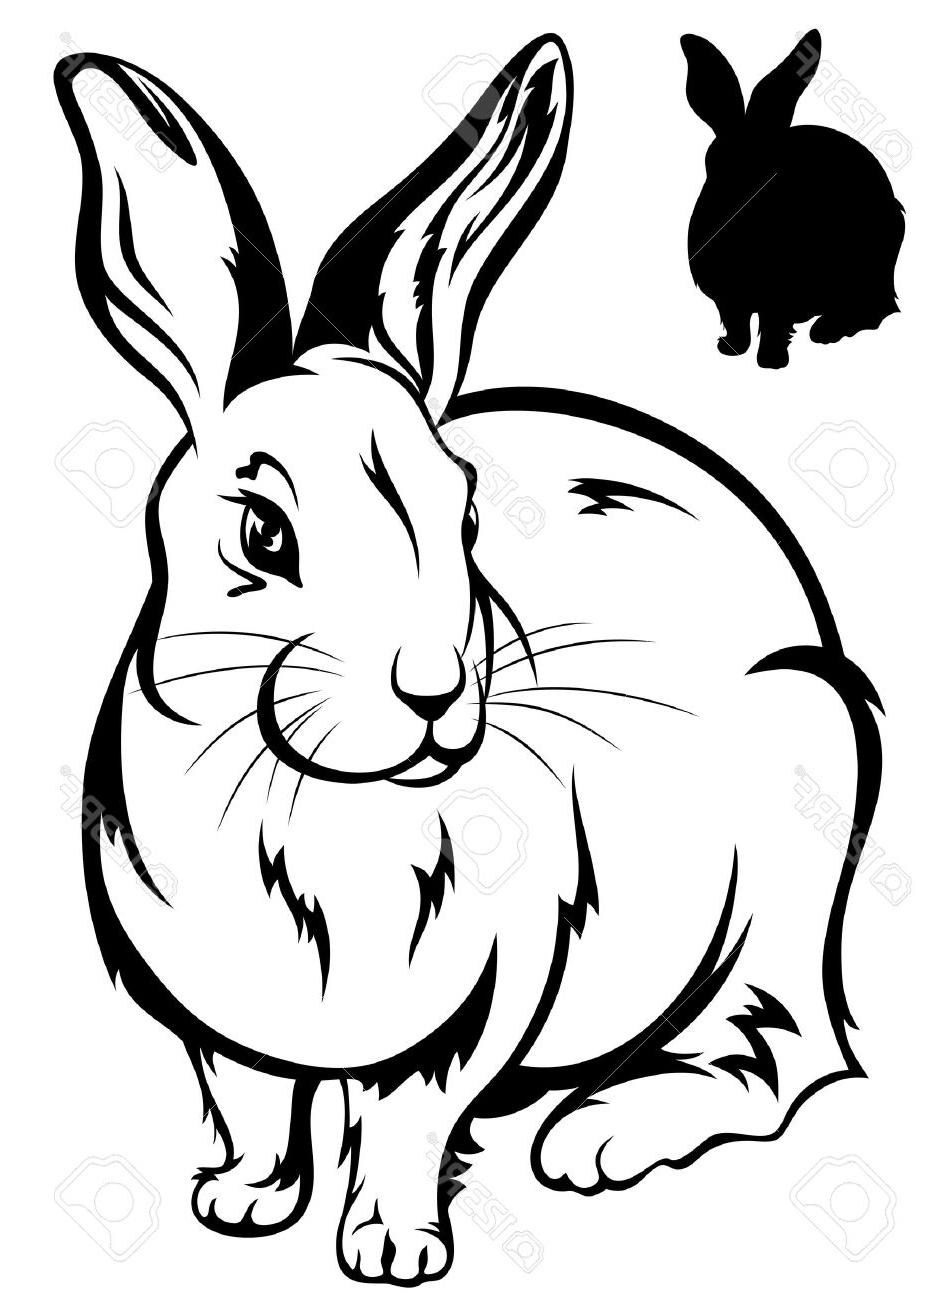 950x1300 Top Cute Rabbit Illustration Black And White Outline Silhouette